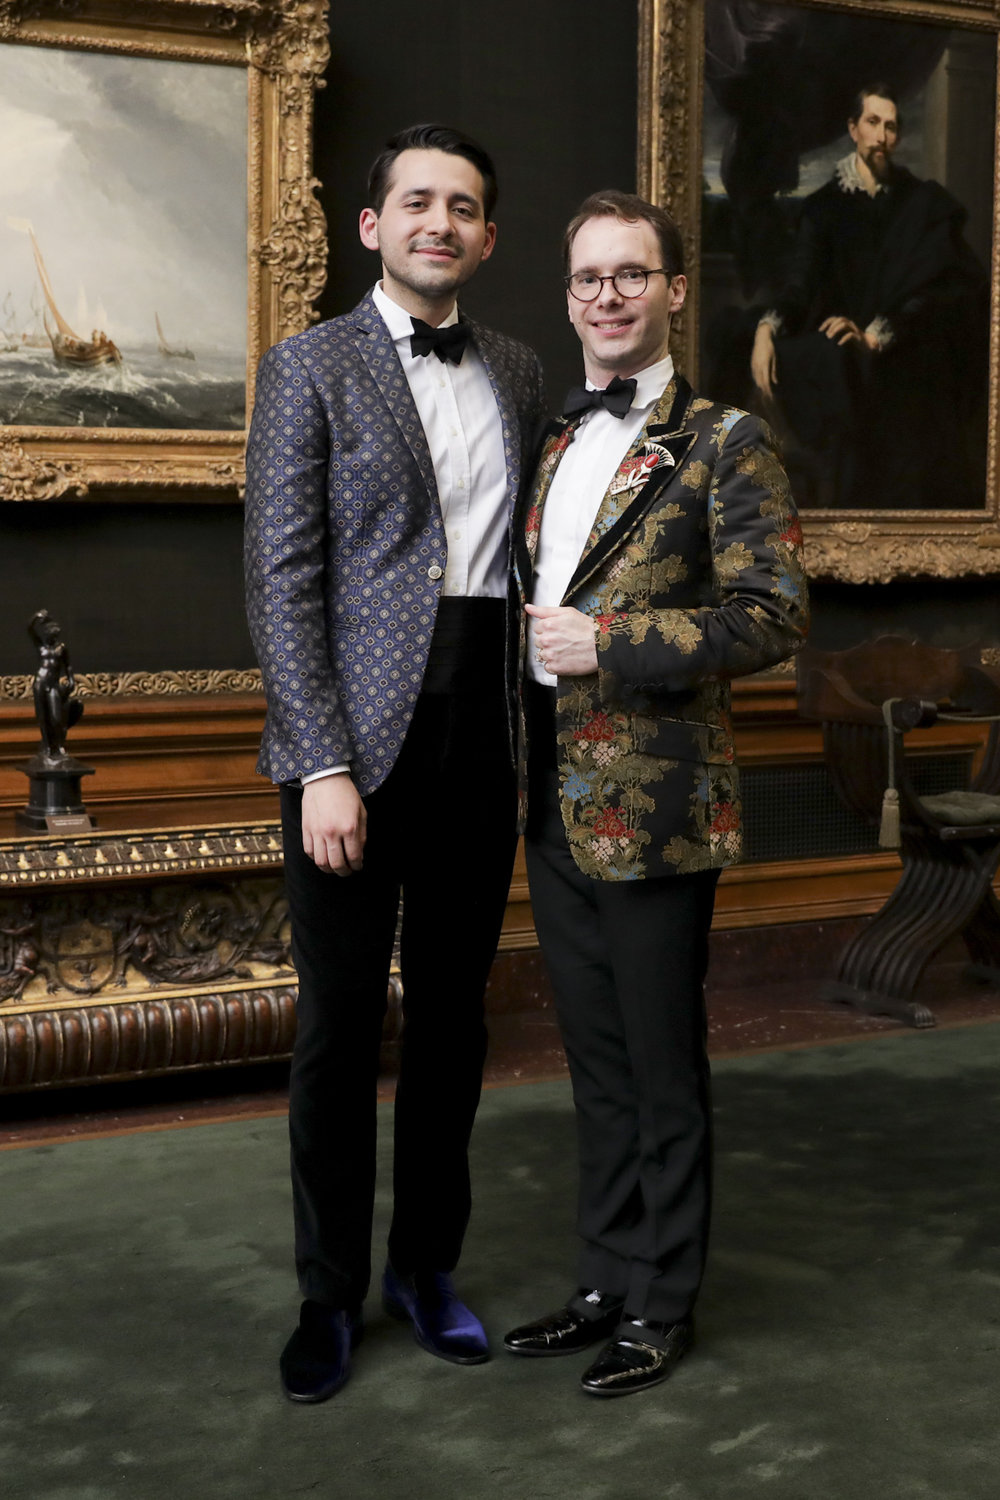 Andrea Perea-Garzon and Blake Funston attend The Frick Collection's 20th Annual Young Fellows Ball at 1 East 70th Street on Thursday, March 21st, 2019. Photography, Courtesy of The Frick Collection.